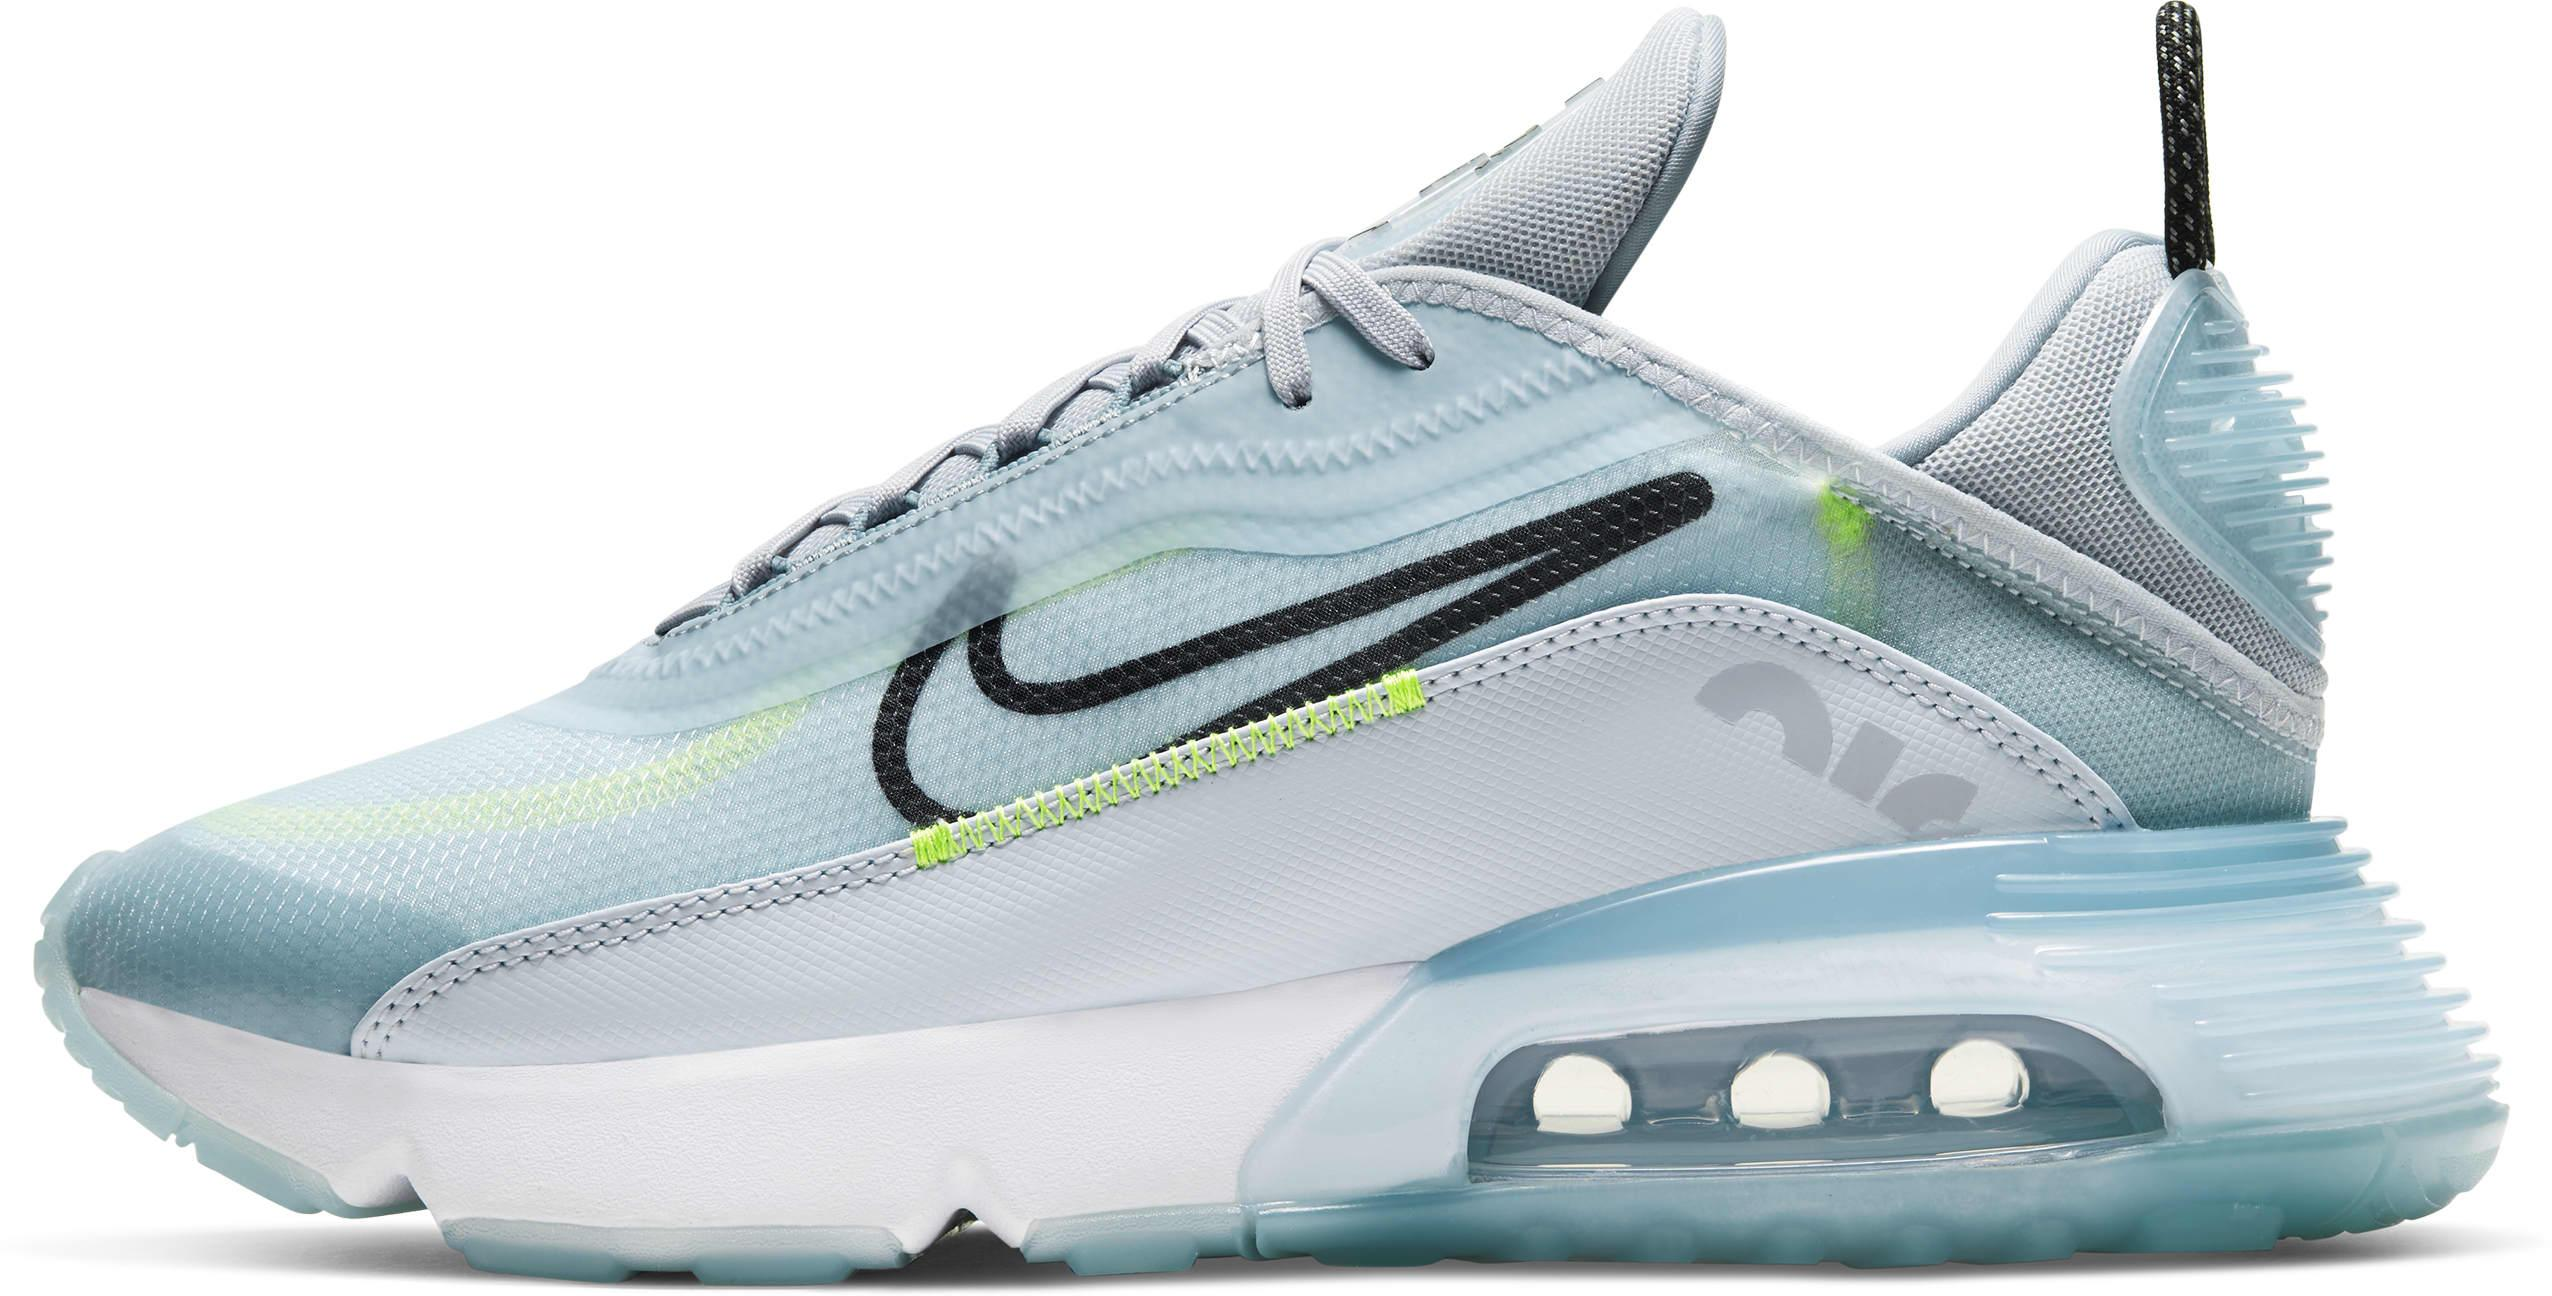 Nike Air Max 2090 Ice Blue/Laser Orange/White/Black